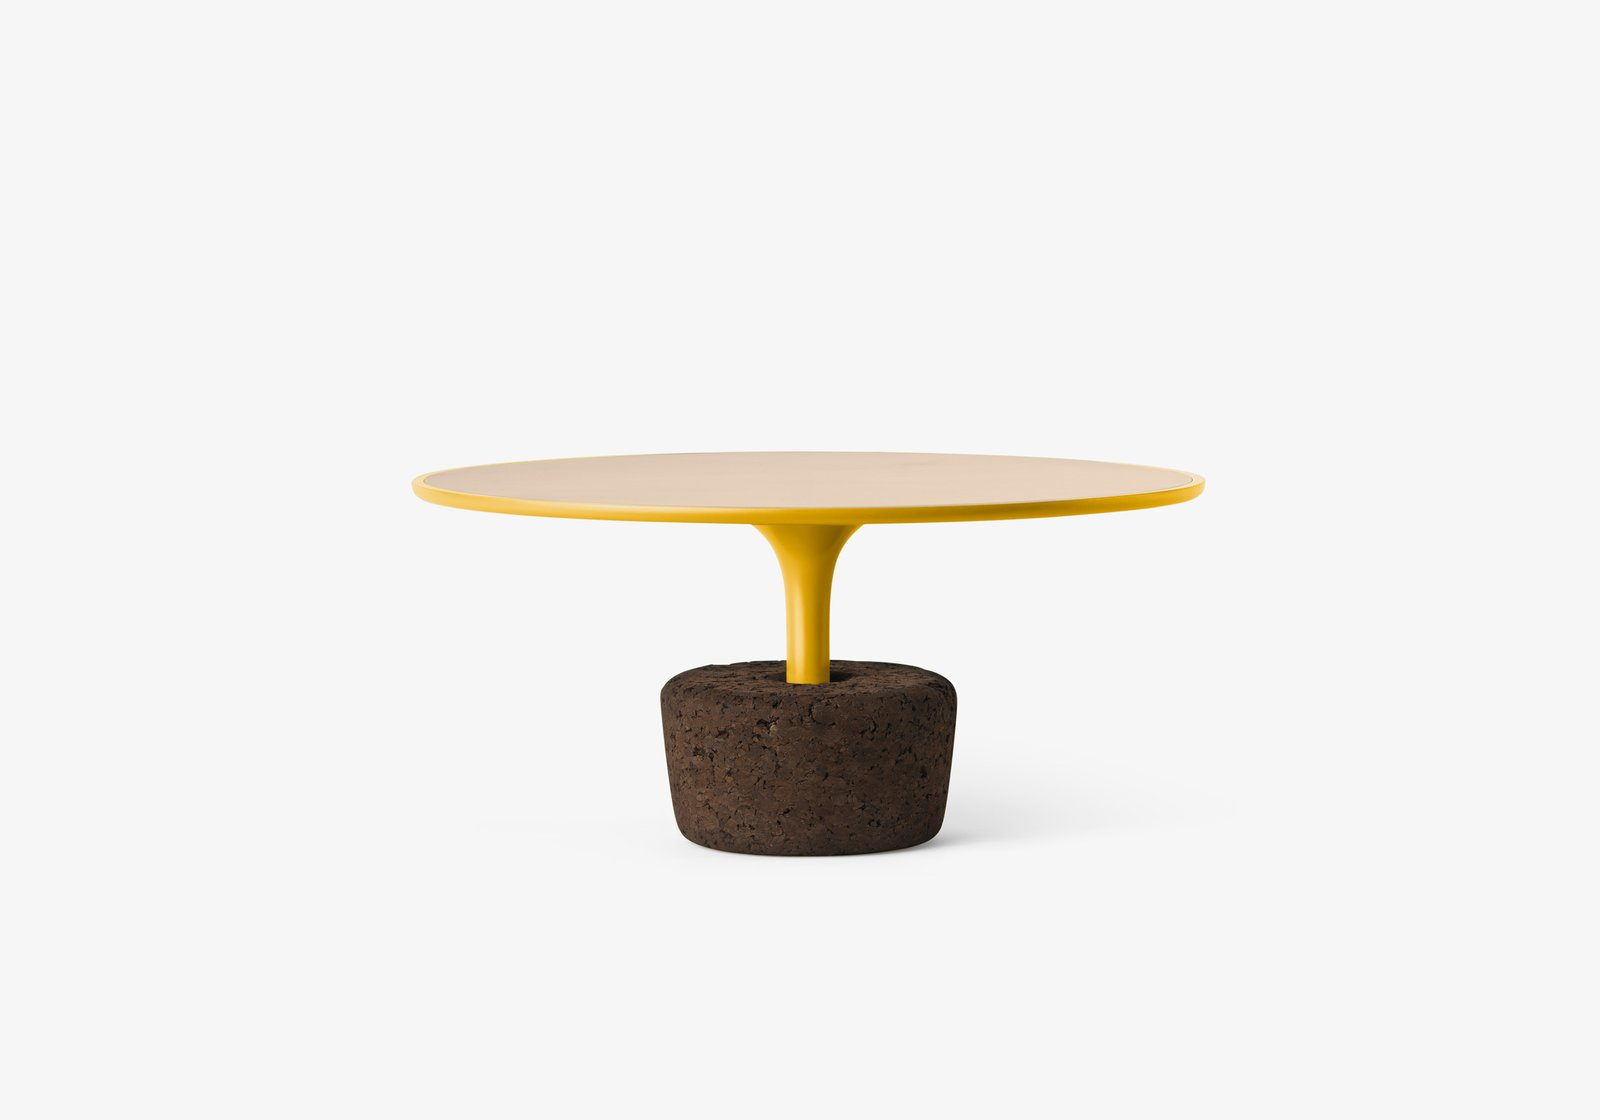 "Flora Wide Low  FLORA is a set of coffee tables that refers to the plants we offer to the ones we love, so there is a similarity between taking care of plants and taking care of the objects. These versatile tables combine natural materials, with four sizes and six different colored frame finishes and may be used separately or together.  Size  Ø65 x H30 cm / Ø25,6'' x H11,8''.  Weight  5,7 kg / 12,6 lbs.   Search ""화양동출장안마【Ø1Ø↔⑥445↔⑨663】⊀후불결제⊁ 화양동출장아가씨з화양동콜걸출장안마후기 【이쁜이들】화양동출장마사지콜걸 화양동출장샵강추 화양동출장안마모텔7화양동출장안마후기"" from Floras"